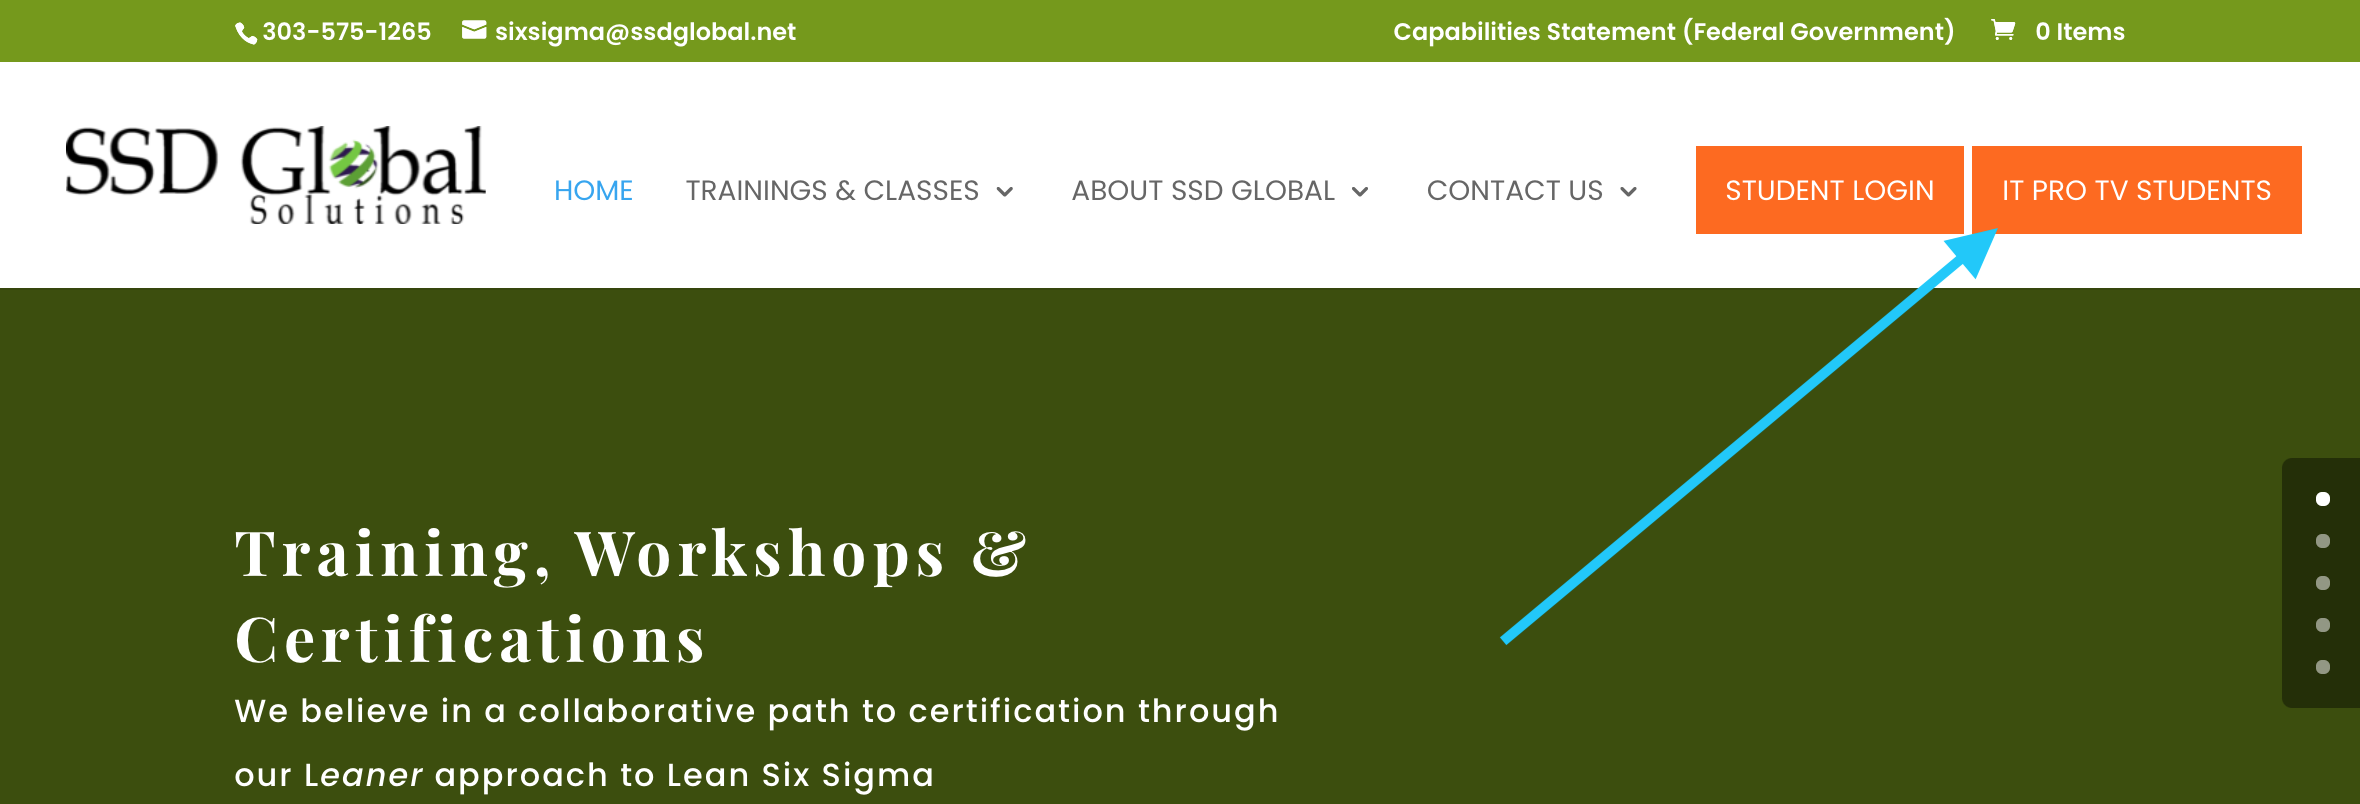 screeenshot of SSD Global homepage, button directing ITProTV students